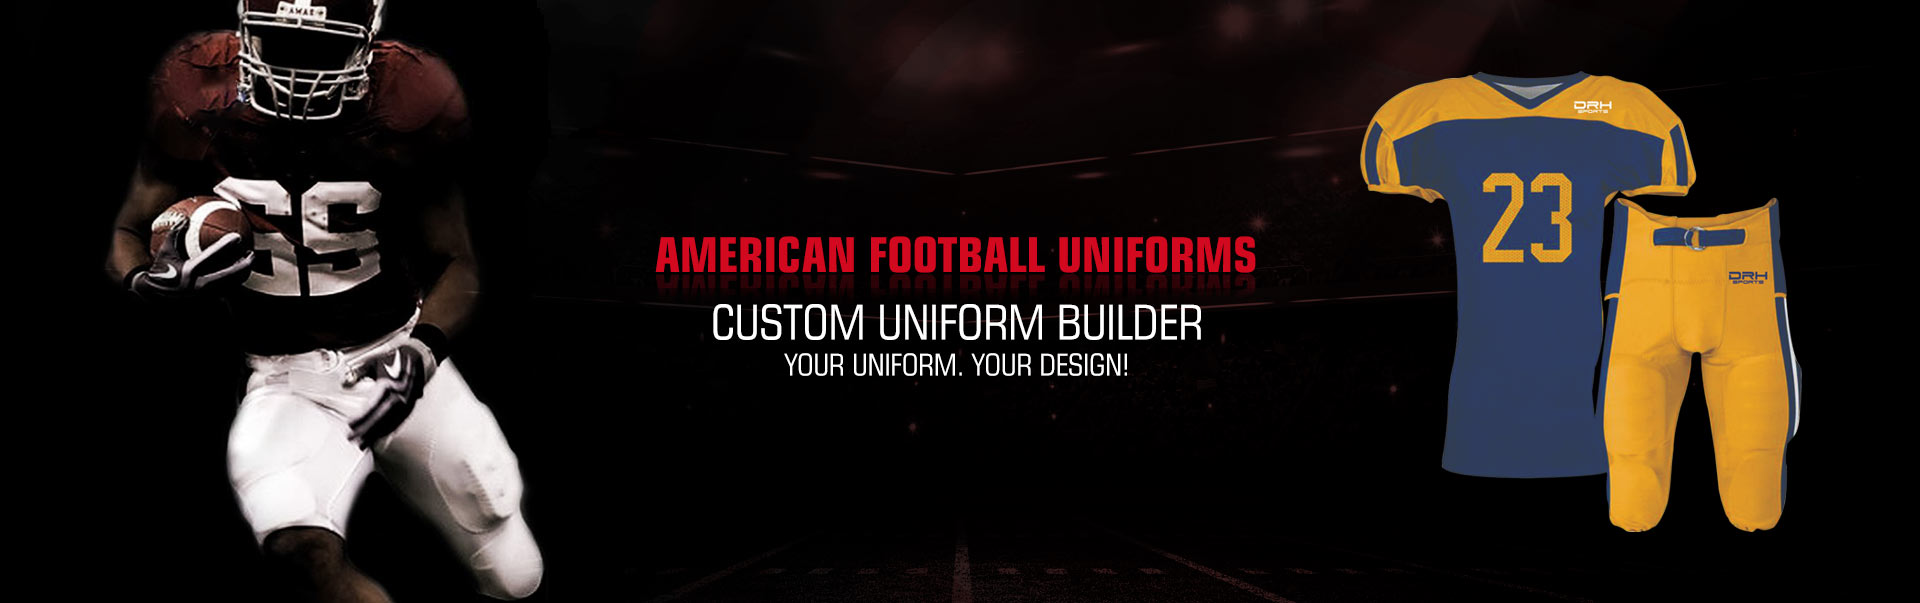 American Football Uniform Wholesaler, Suppliers in Mississippi Mills